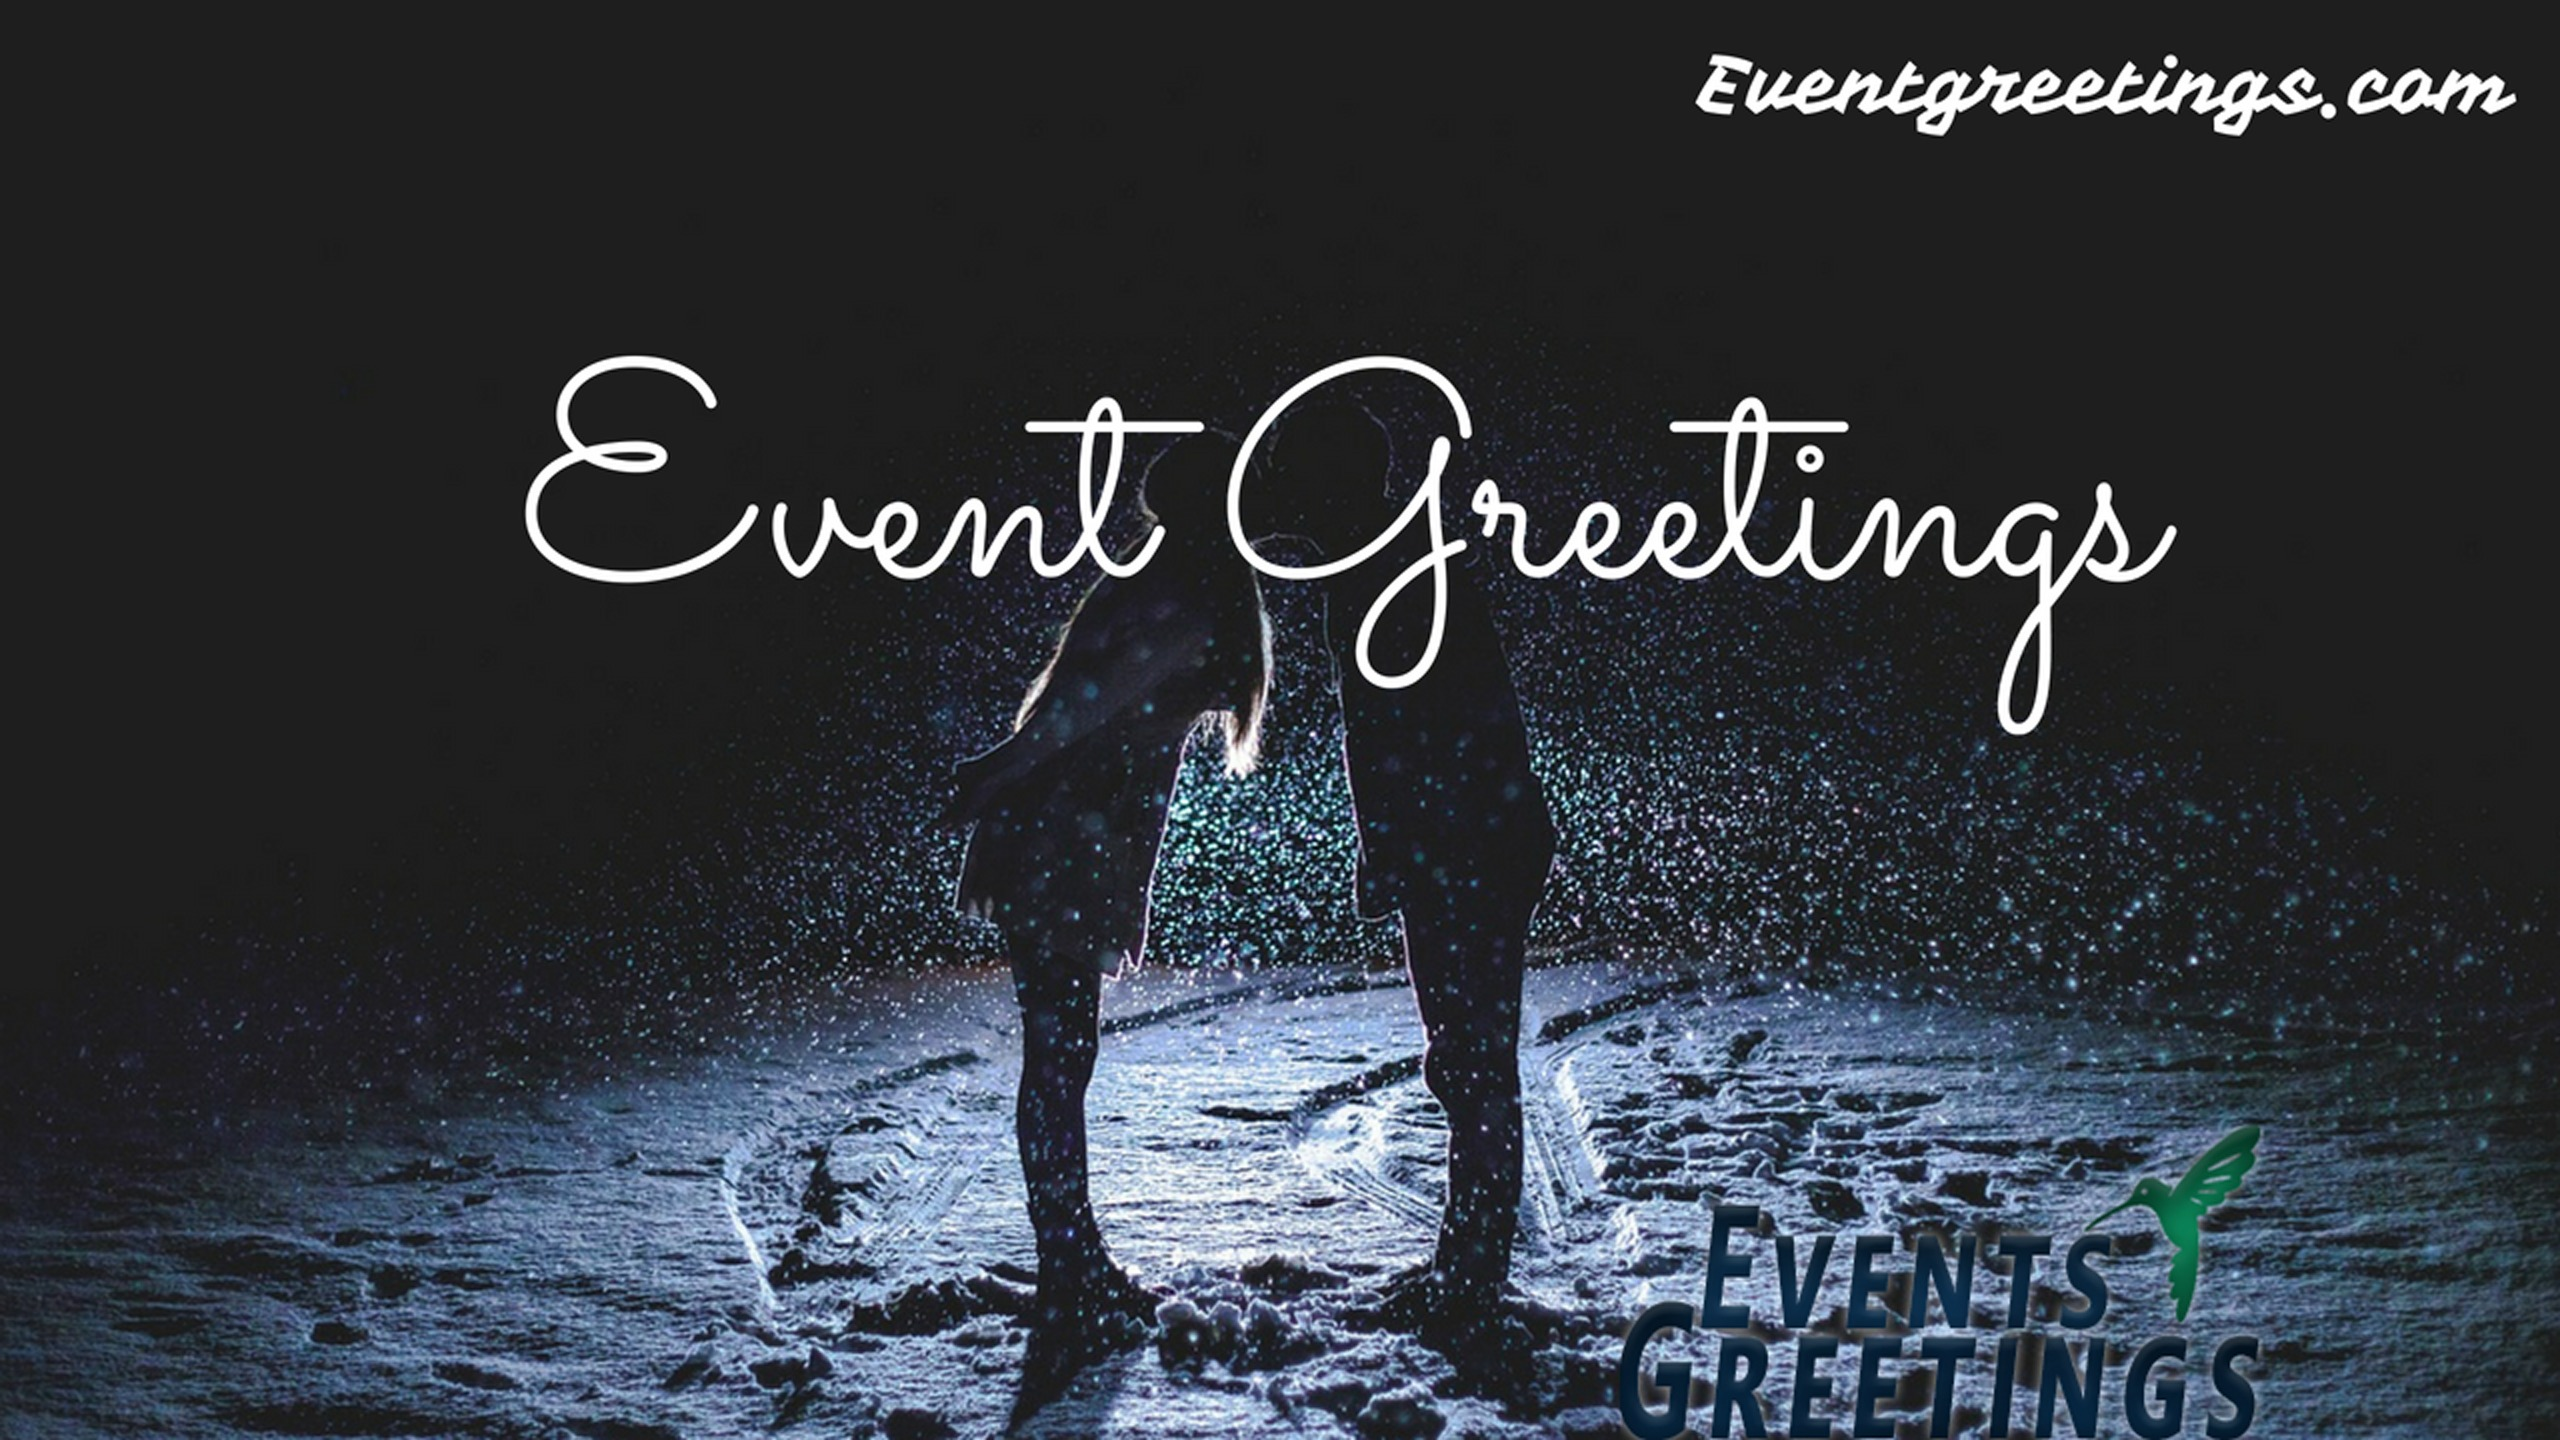 Event greetings m4hsunfo